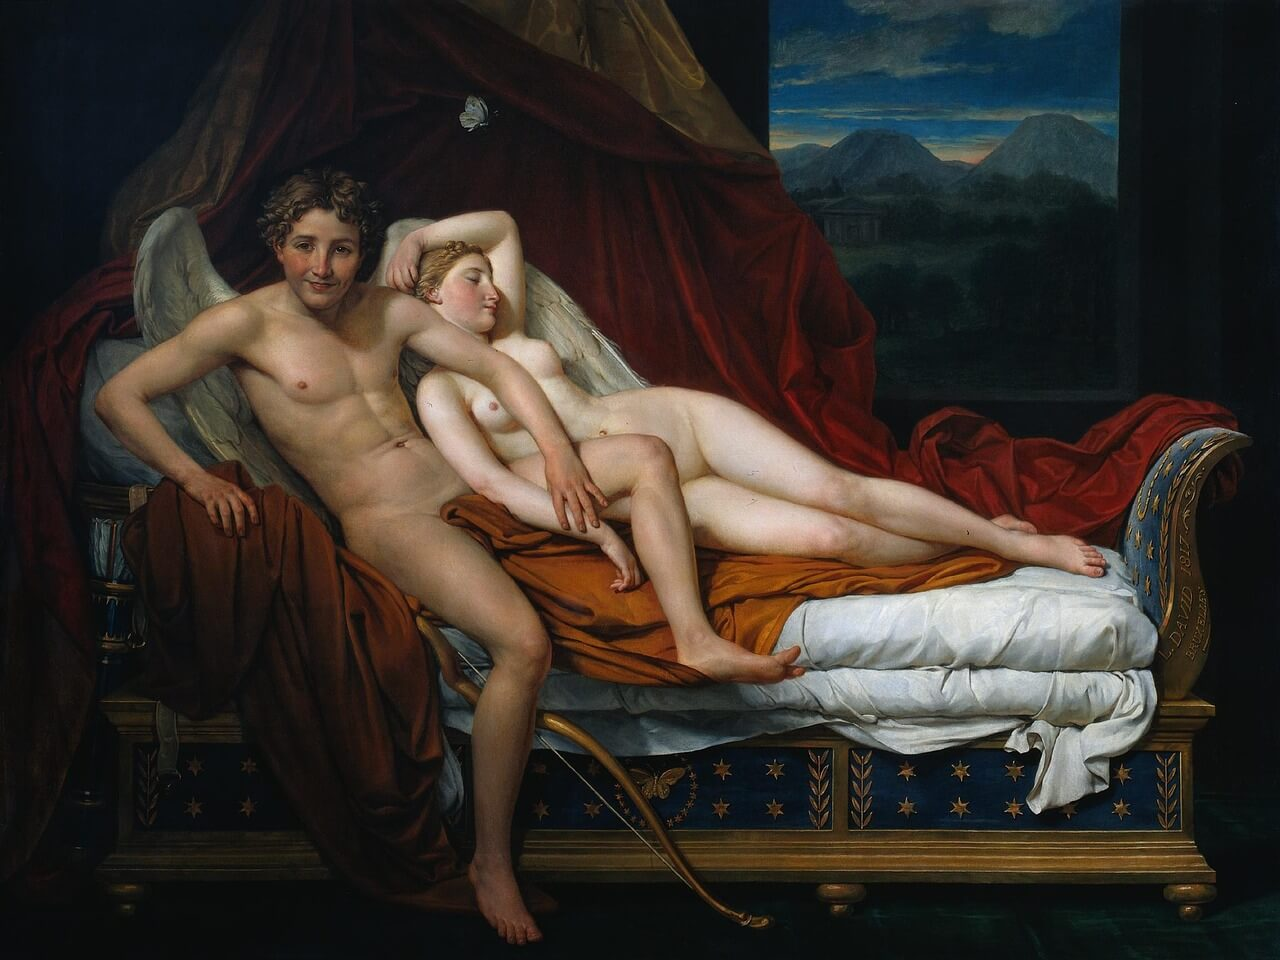 Psyche and Eros